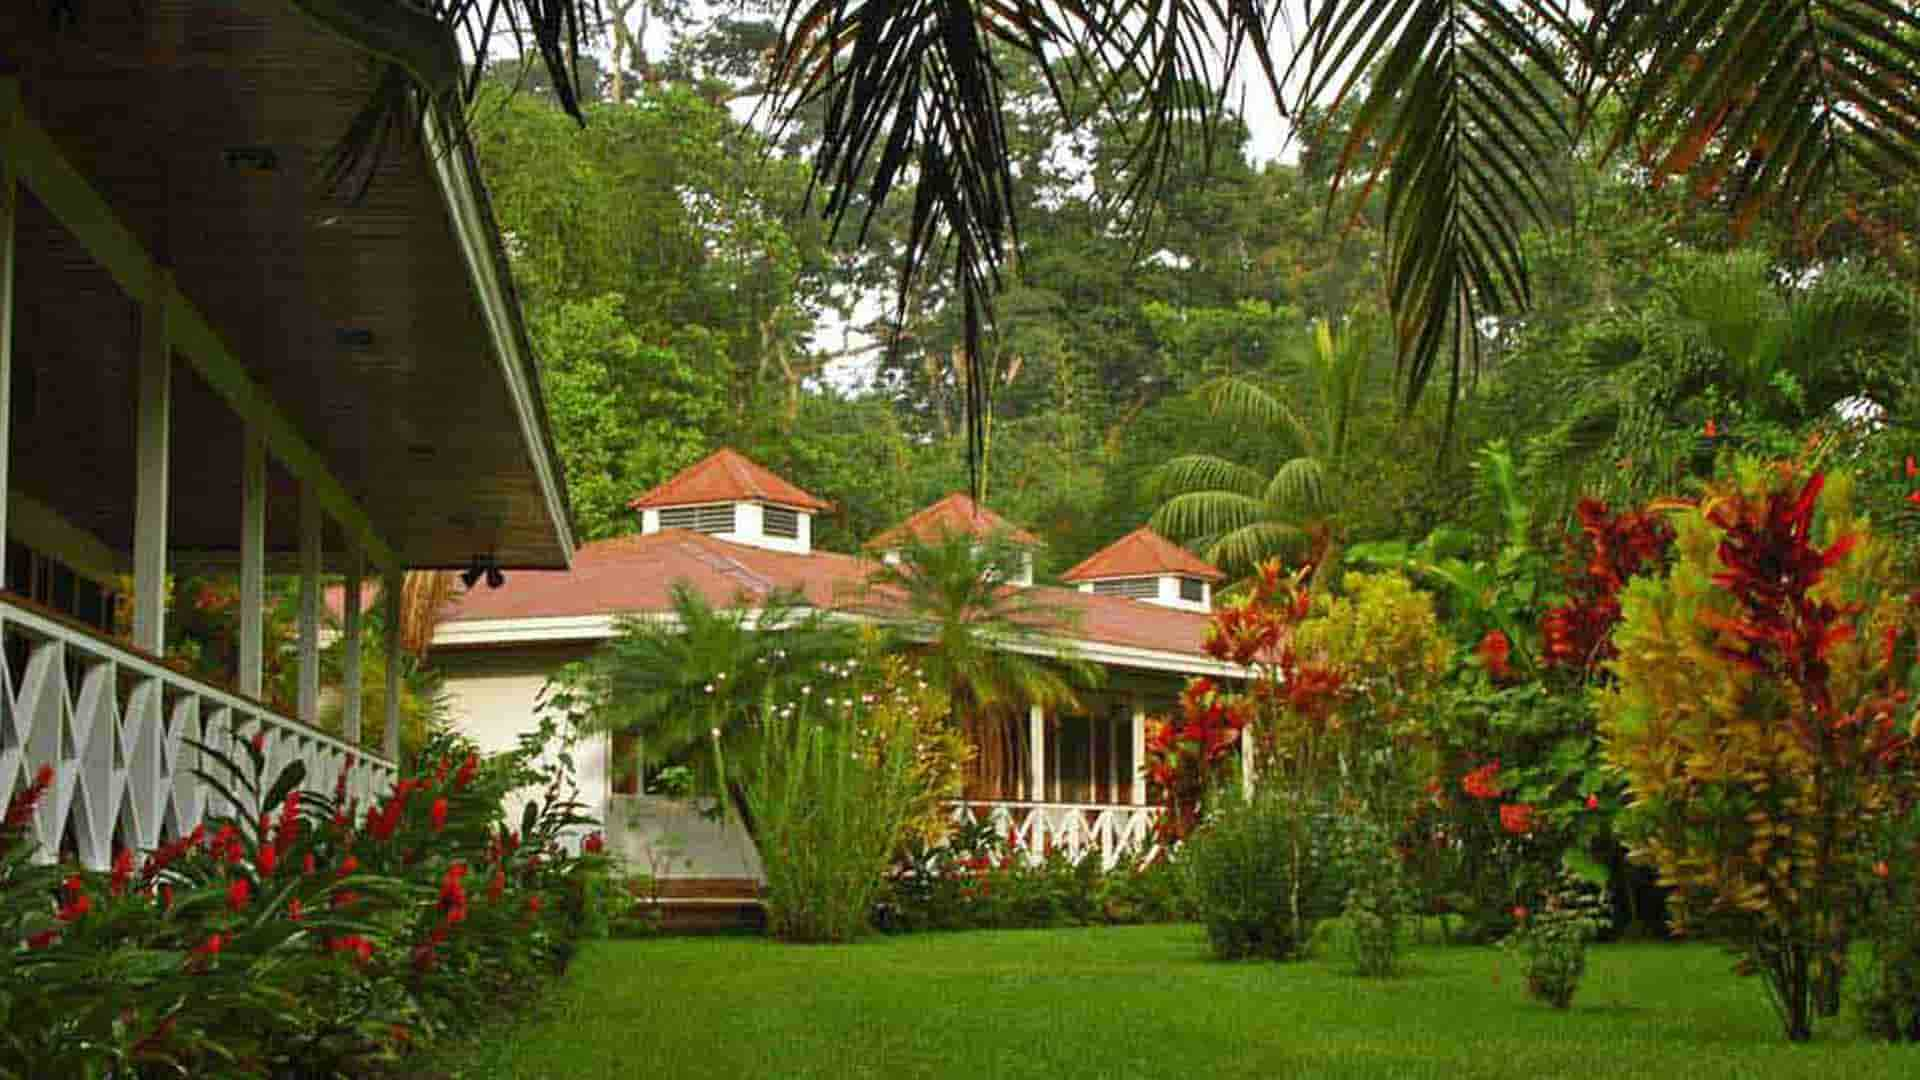 Rio Parismina Lodge and Grounds